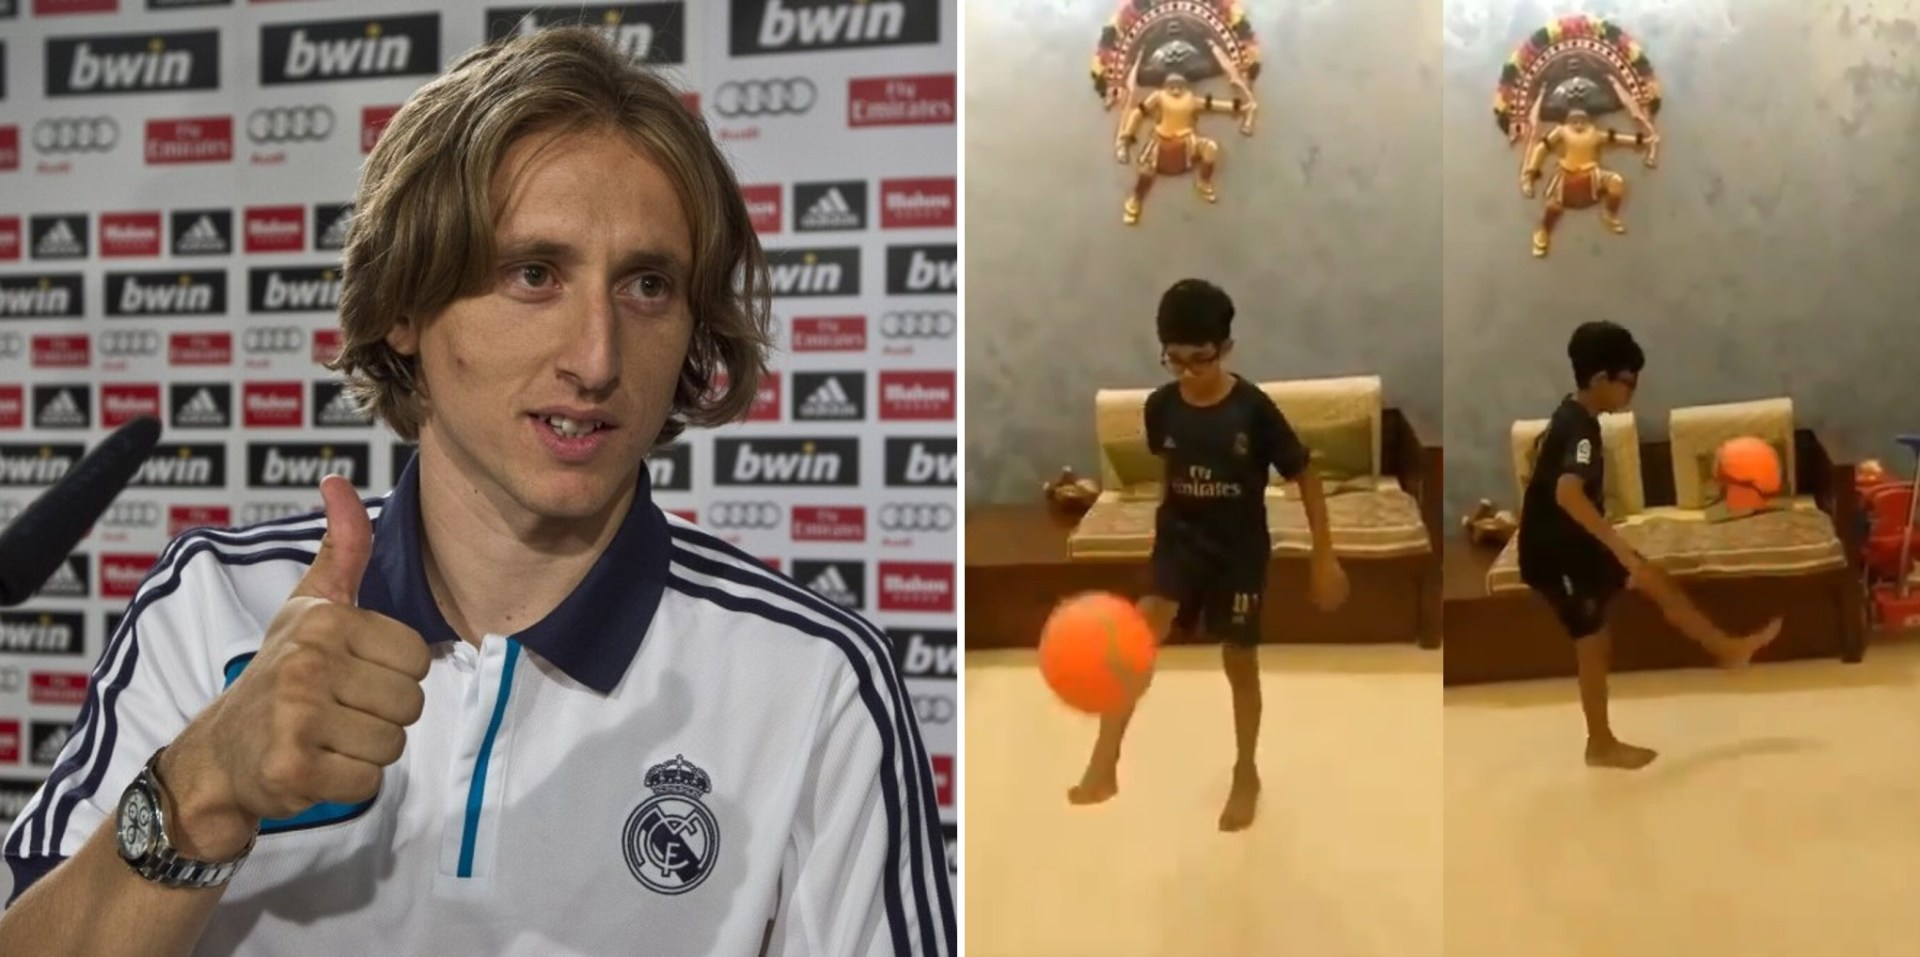 Luka Modrić hails 9 year old Indian kid for his spectacular tribute - THE SPORTS ROOM